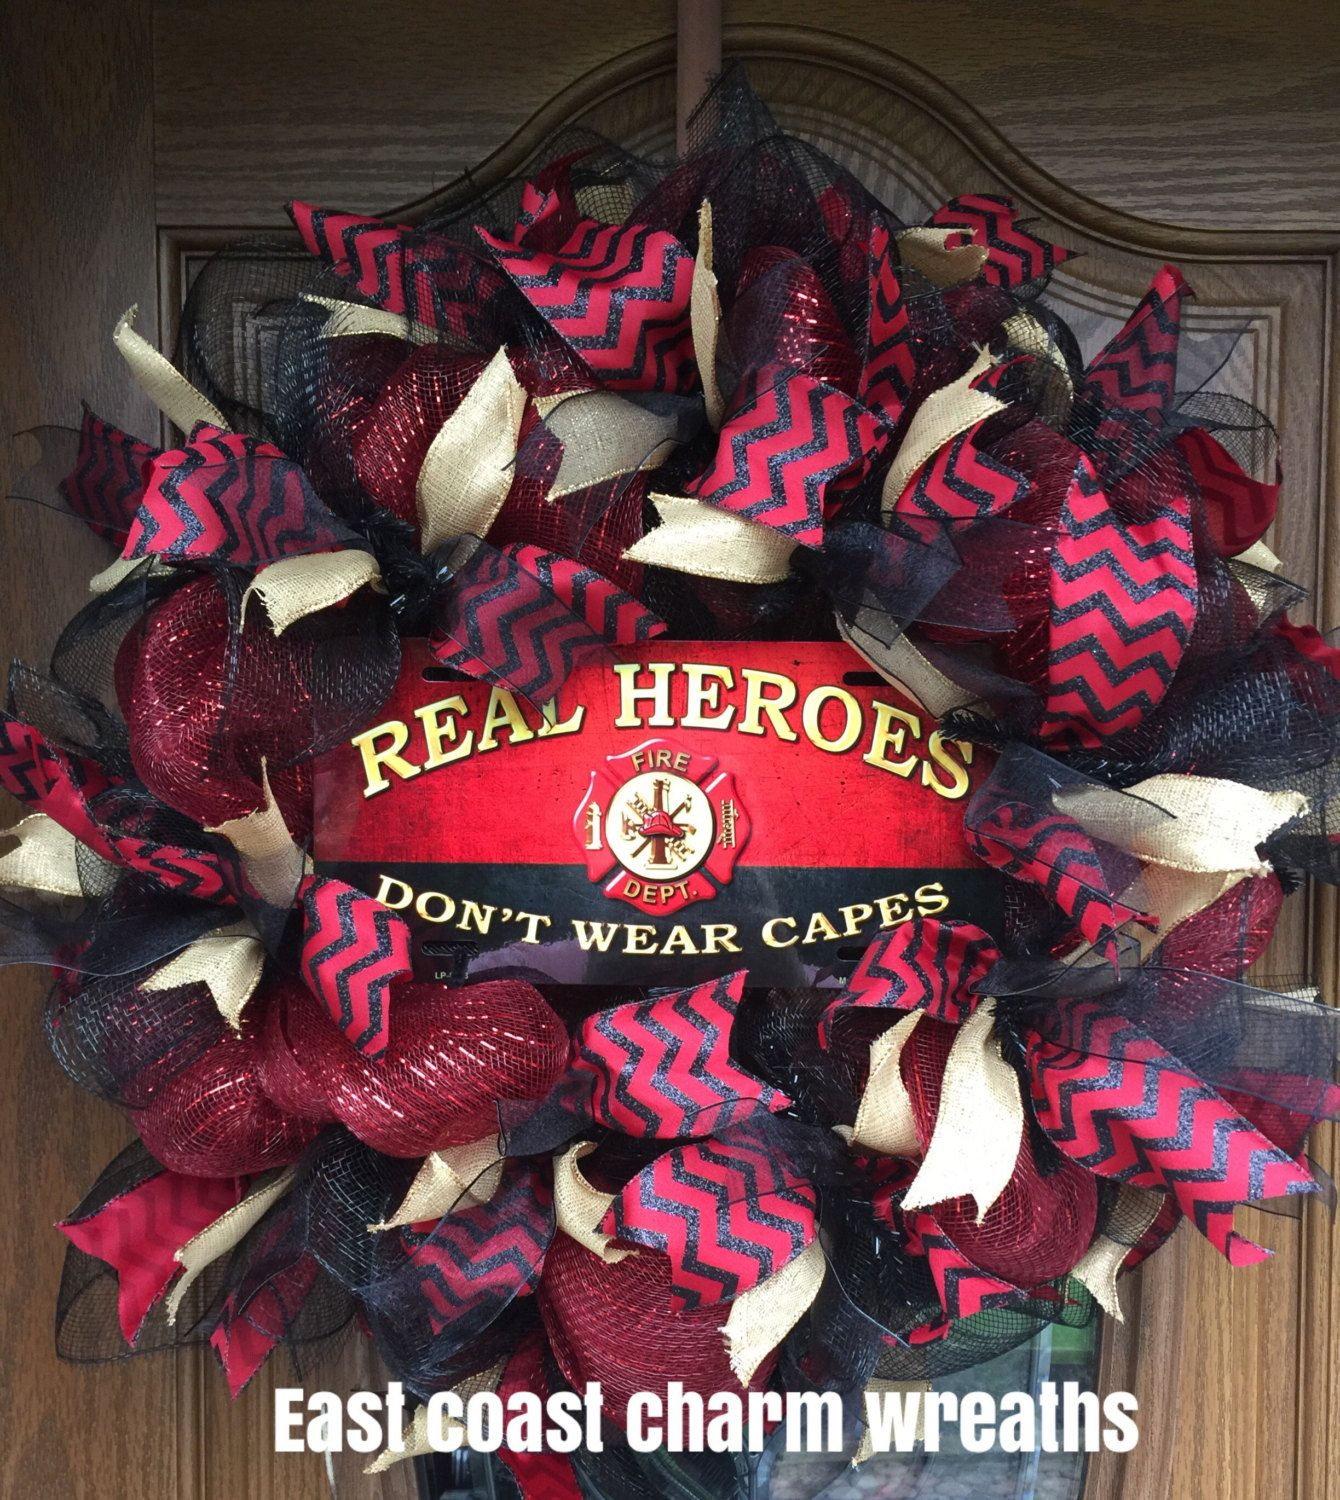 ON SALE Firefighter Home Decor Wreath Gifts deco mesh and assorted ribbon - $64.00 USD